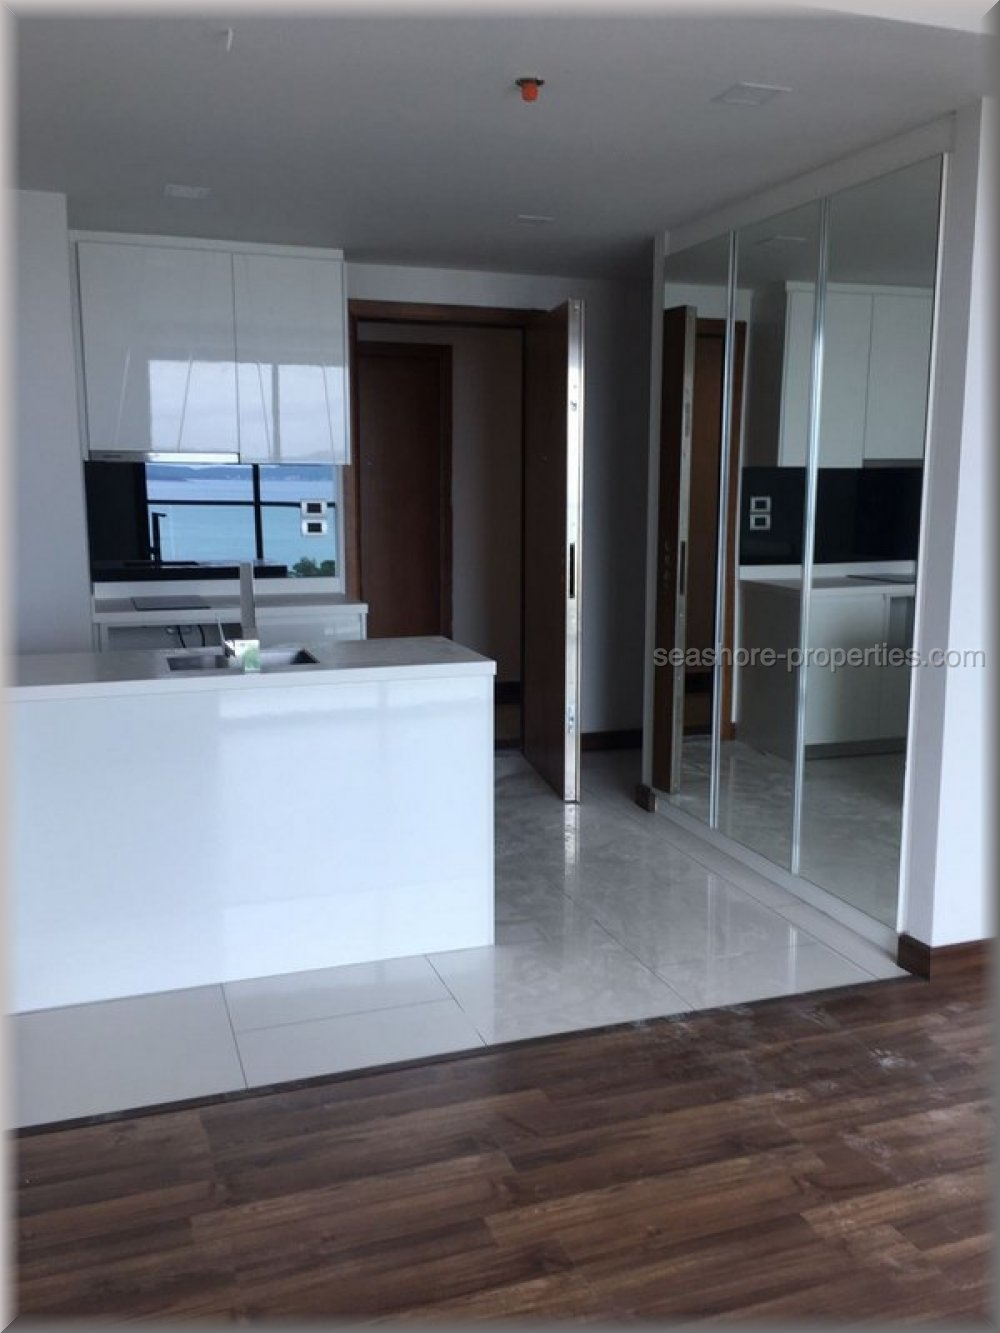 c006353    for sale in Jomtien Pattaya